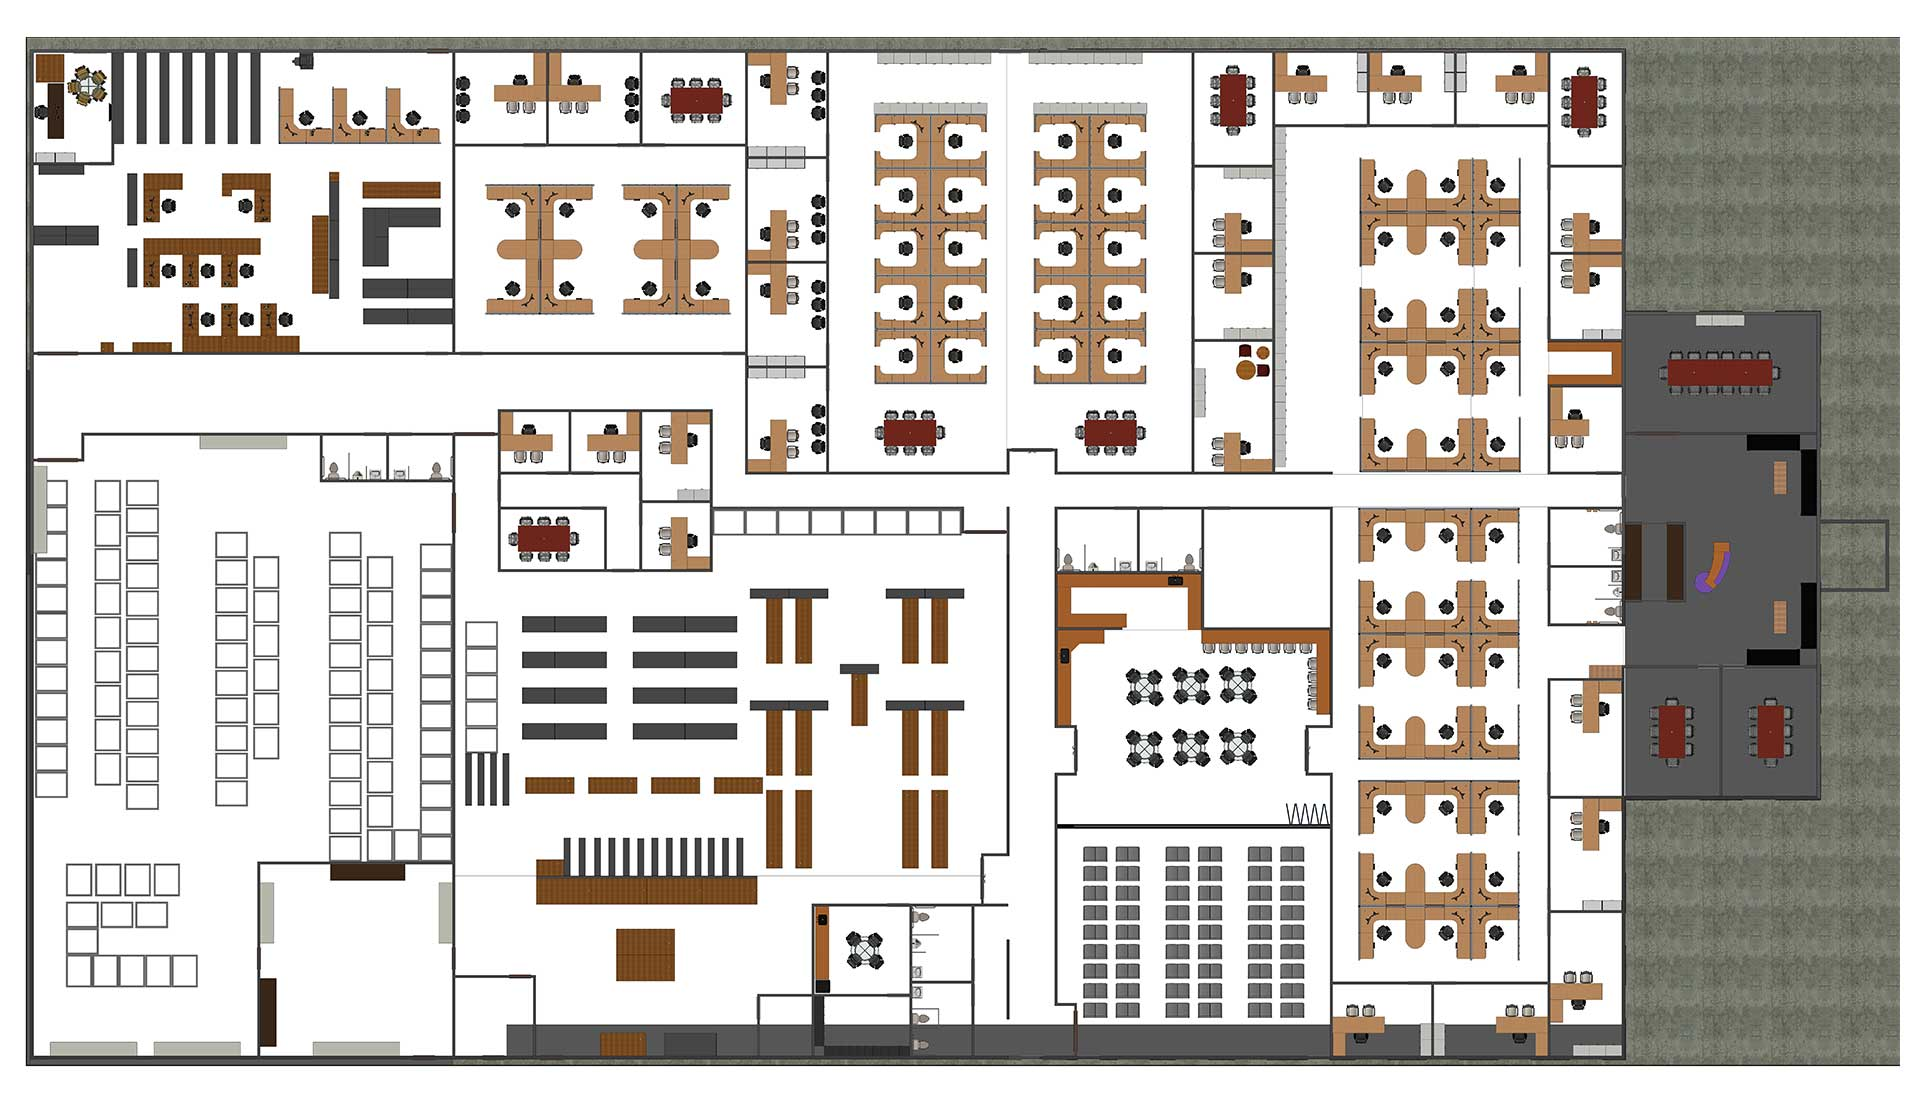 Floor-Plan-Architectural-Revit-Model-with-Parking_Industrial-Project_Revit-Modeling-by-United-BIM